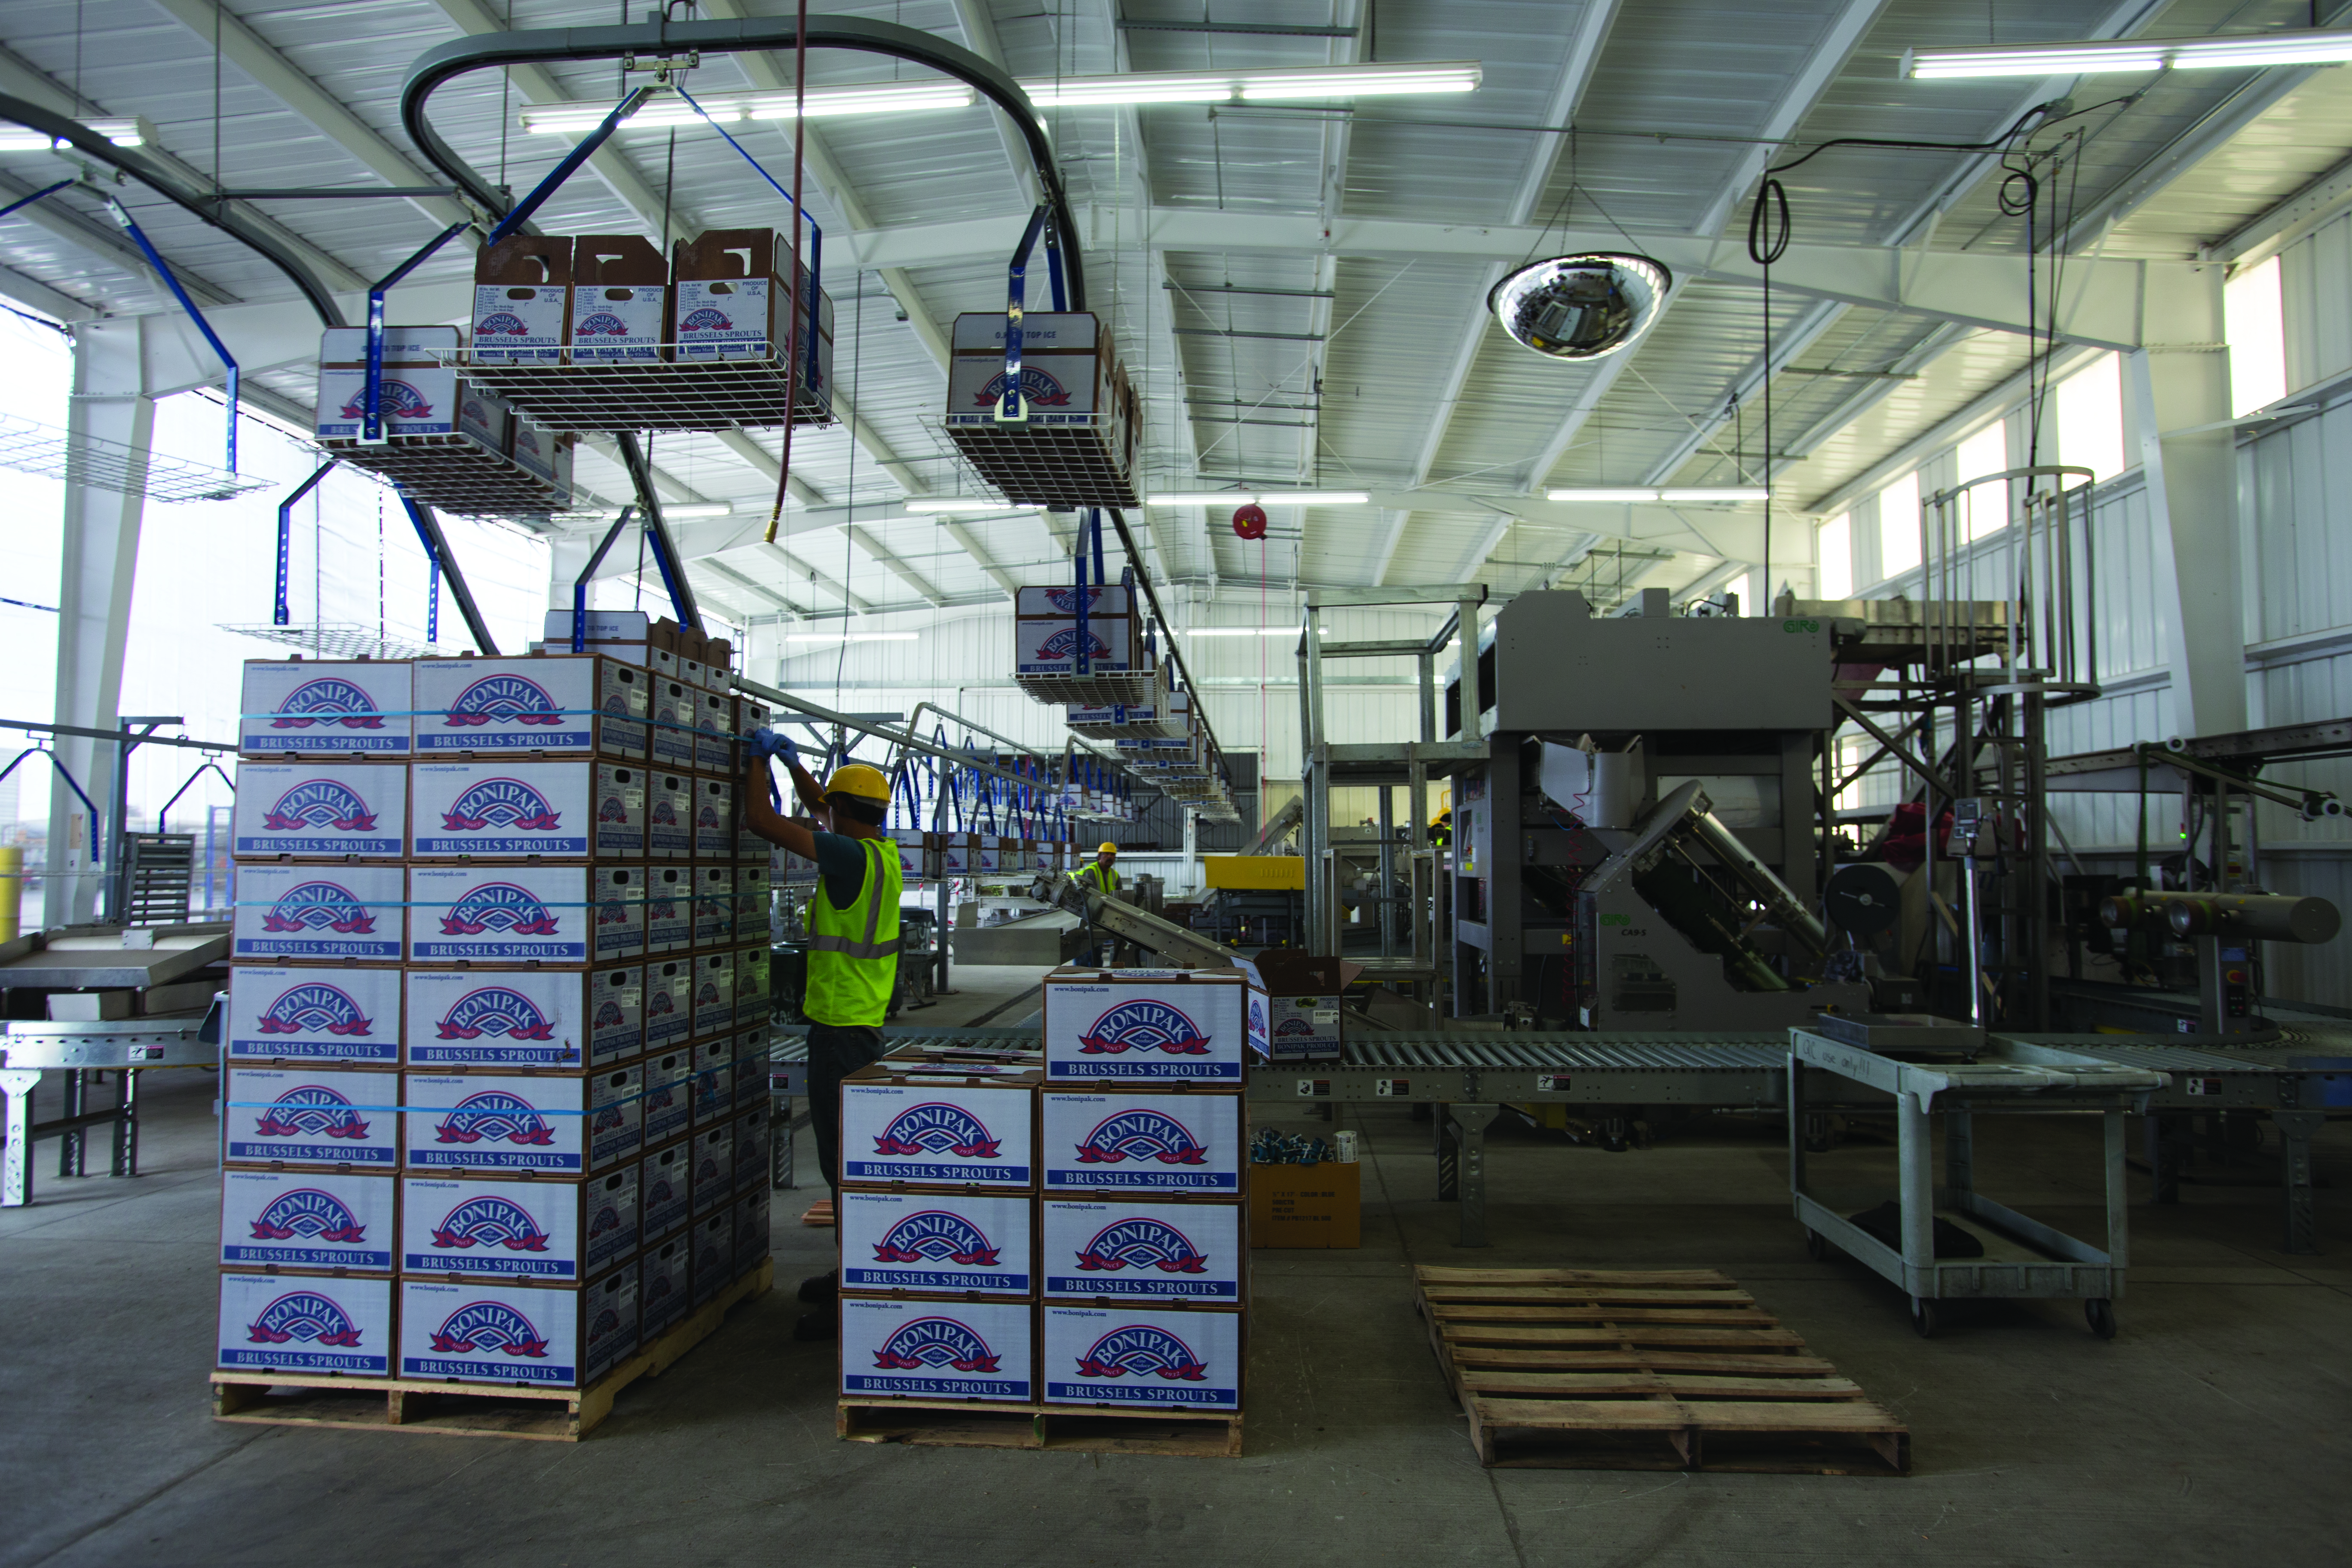 An overhead conveyor system delivers empty cartons to the boxing area.